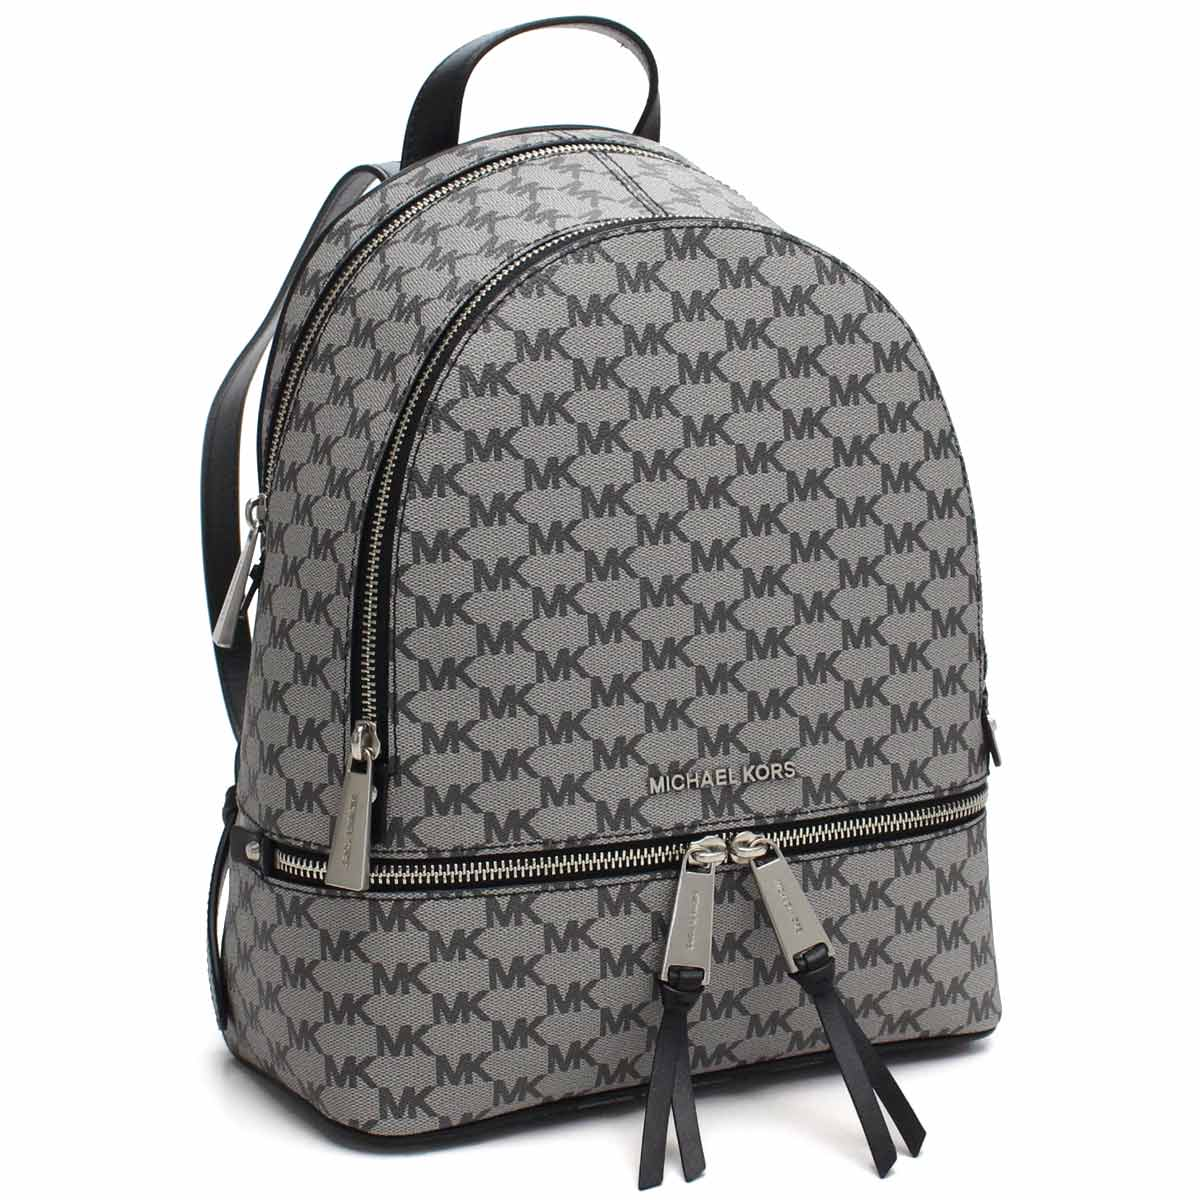 31f945158463 Bighit The total brand wholesale: Michael Kors (MICHAEL KORS) RHEA ZIP  rucksack 30H6AEZB2V BLACK gray system | Rakuten Global Market